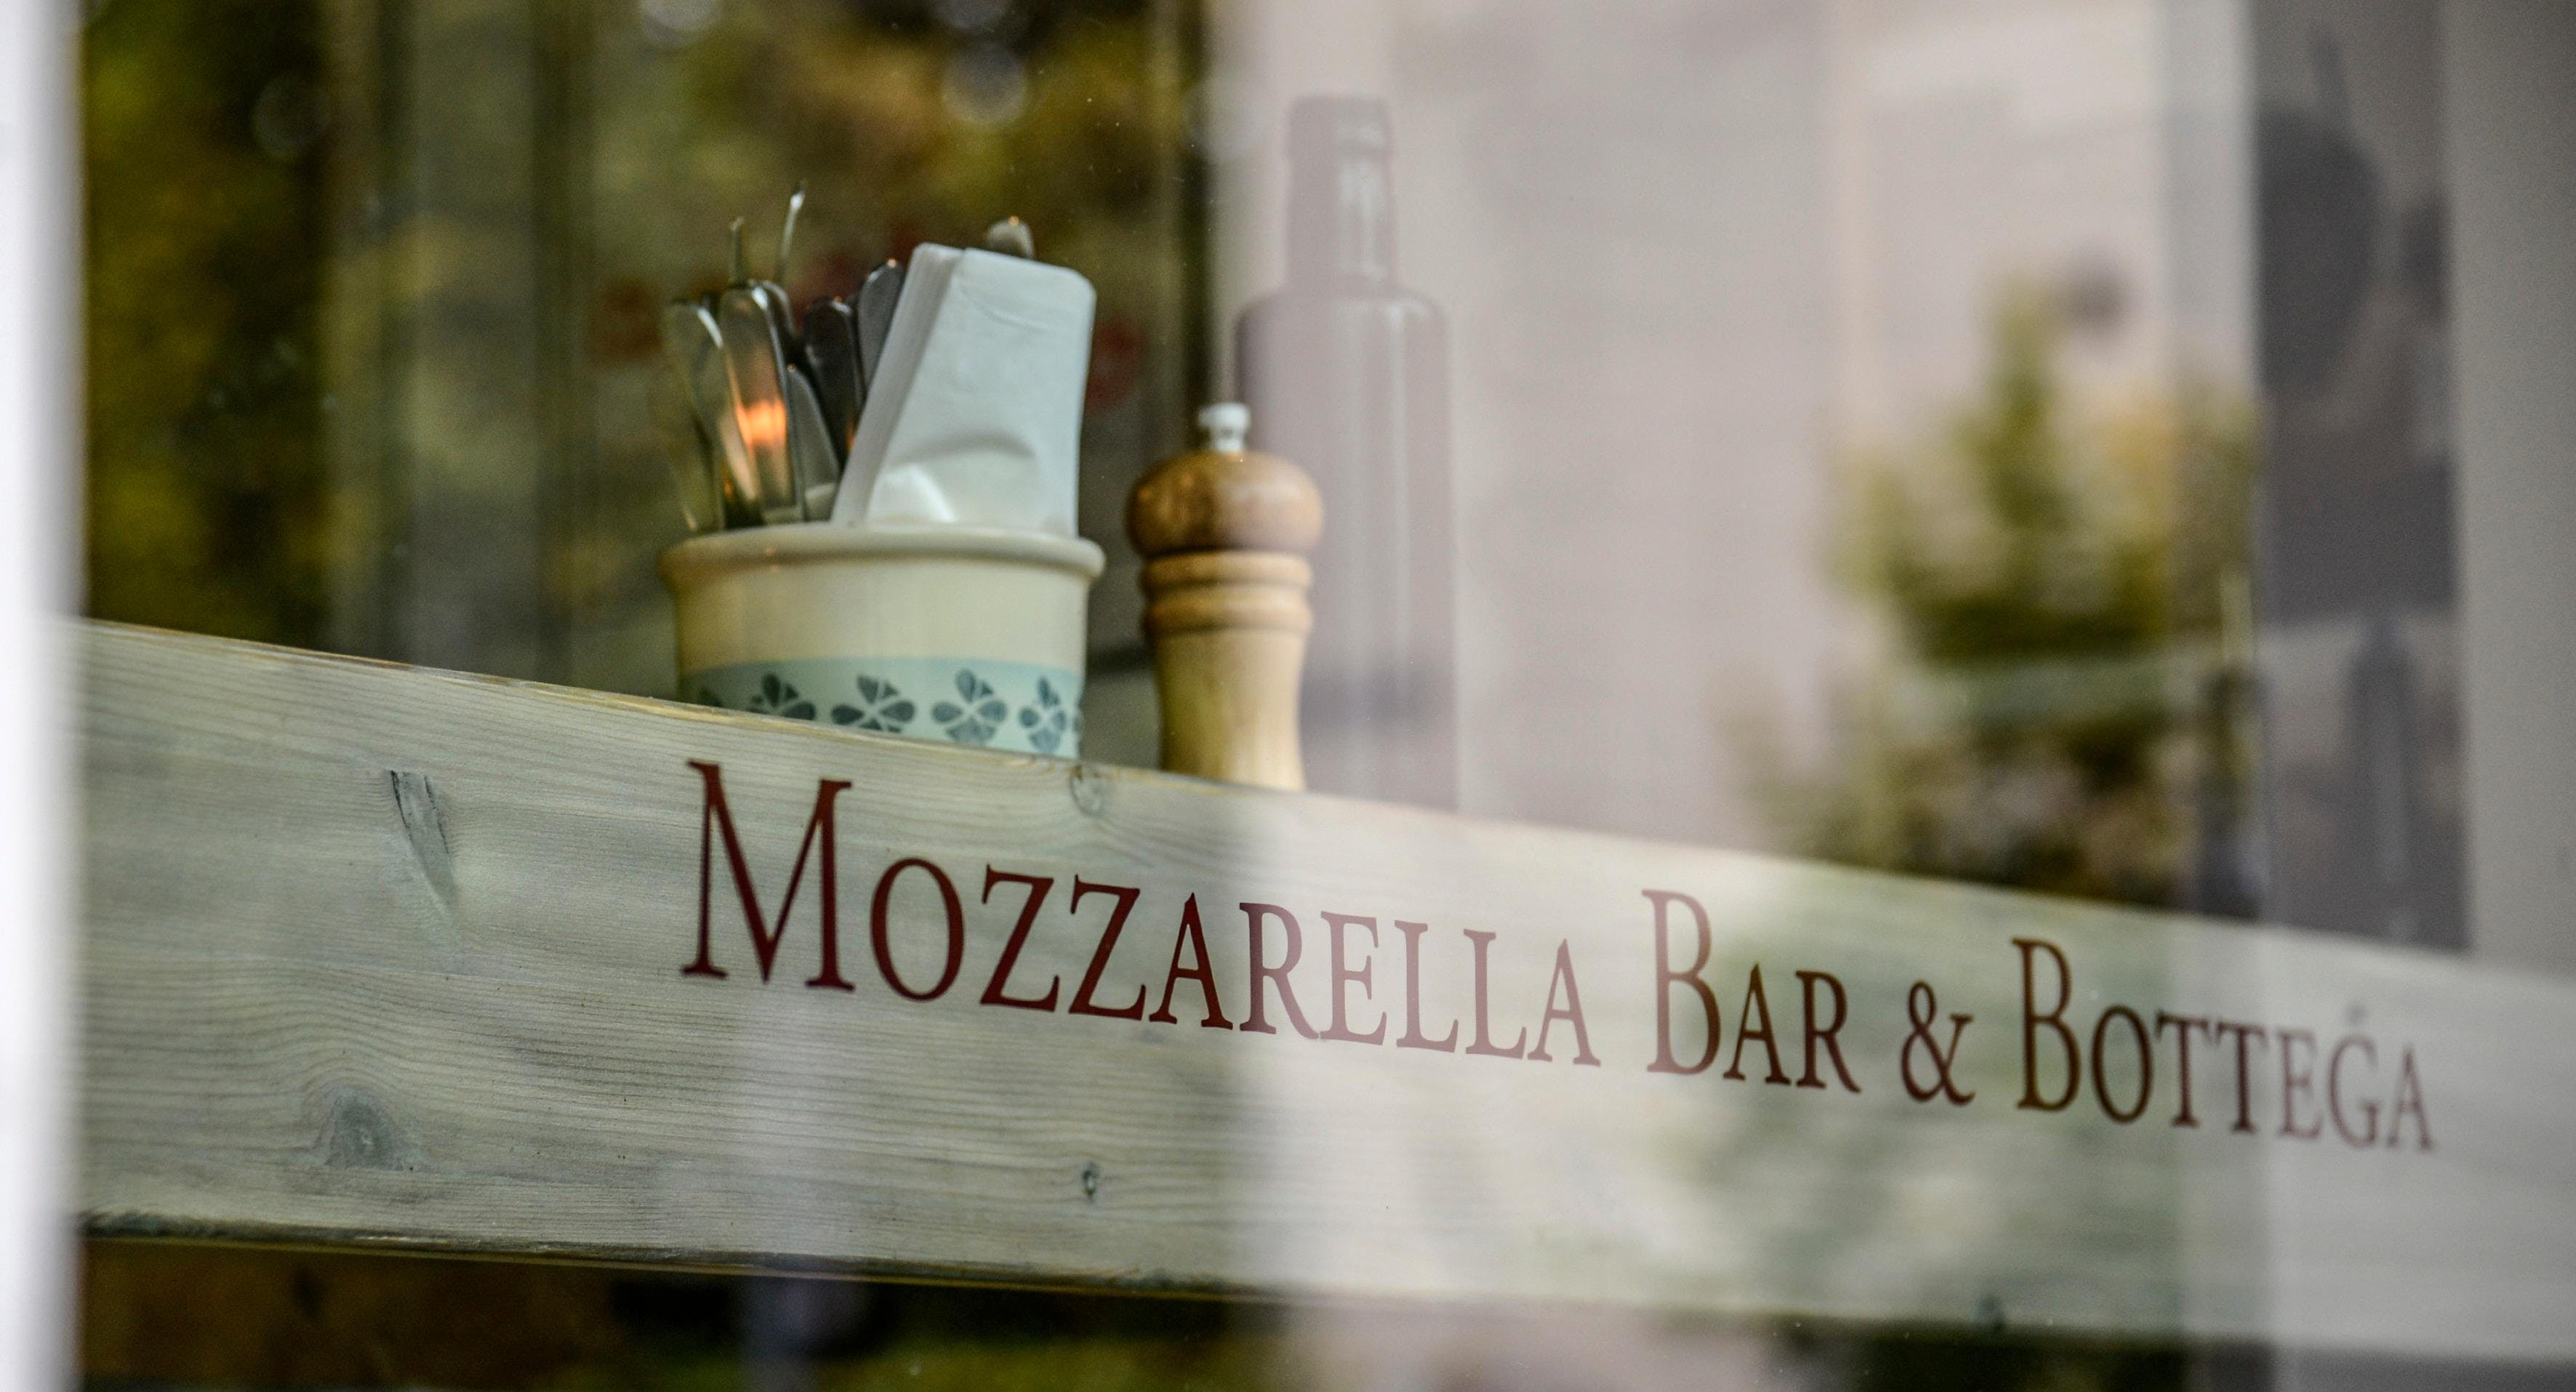 Mozzarella Bar & Bottega